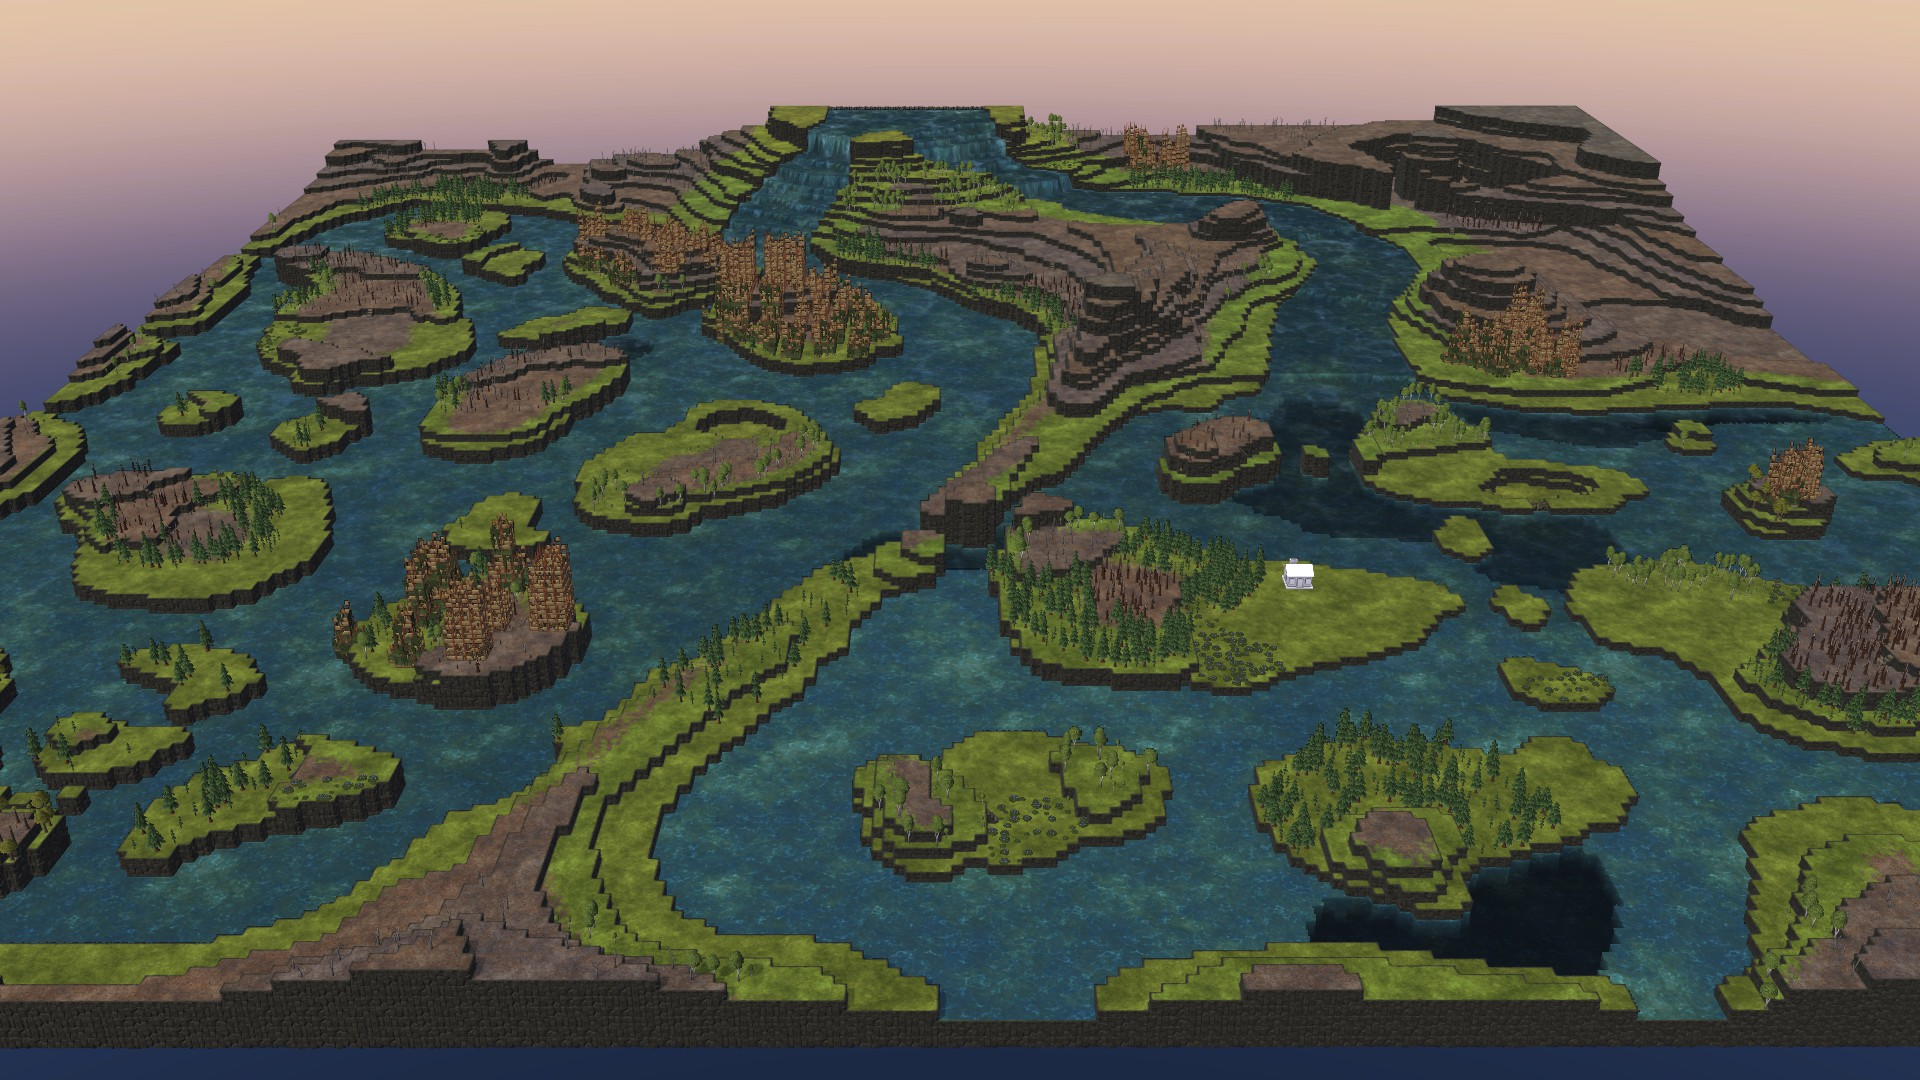 Timberborn All Maps in Game With Photo Guide - Thousand Islands Map: - 32F4671